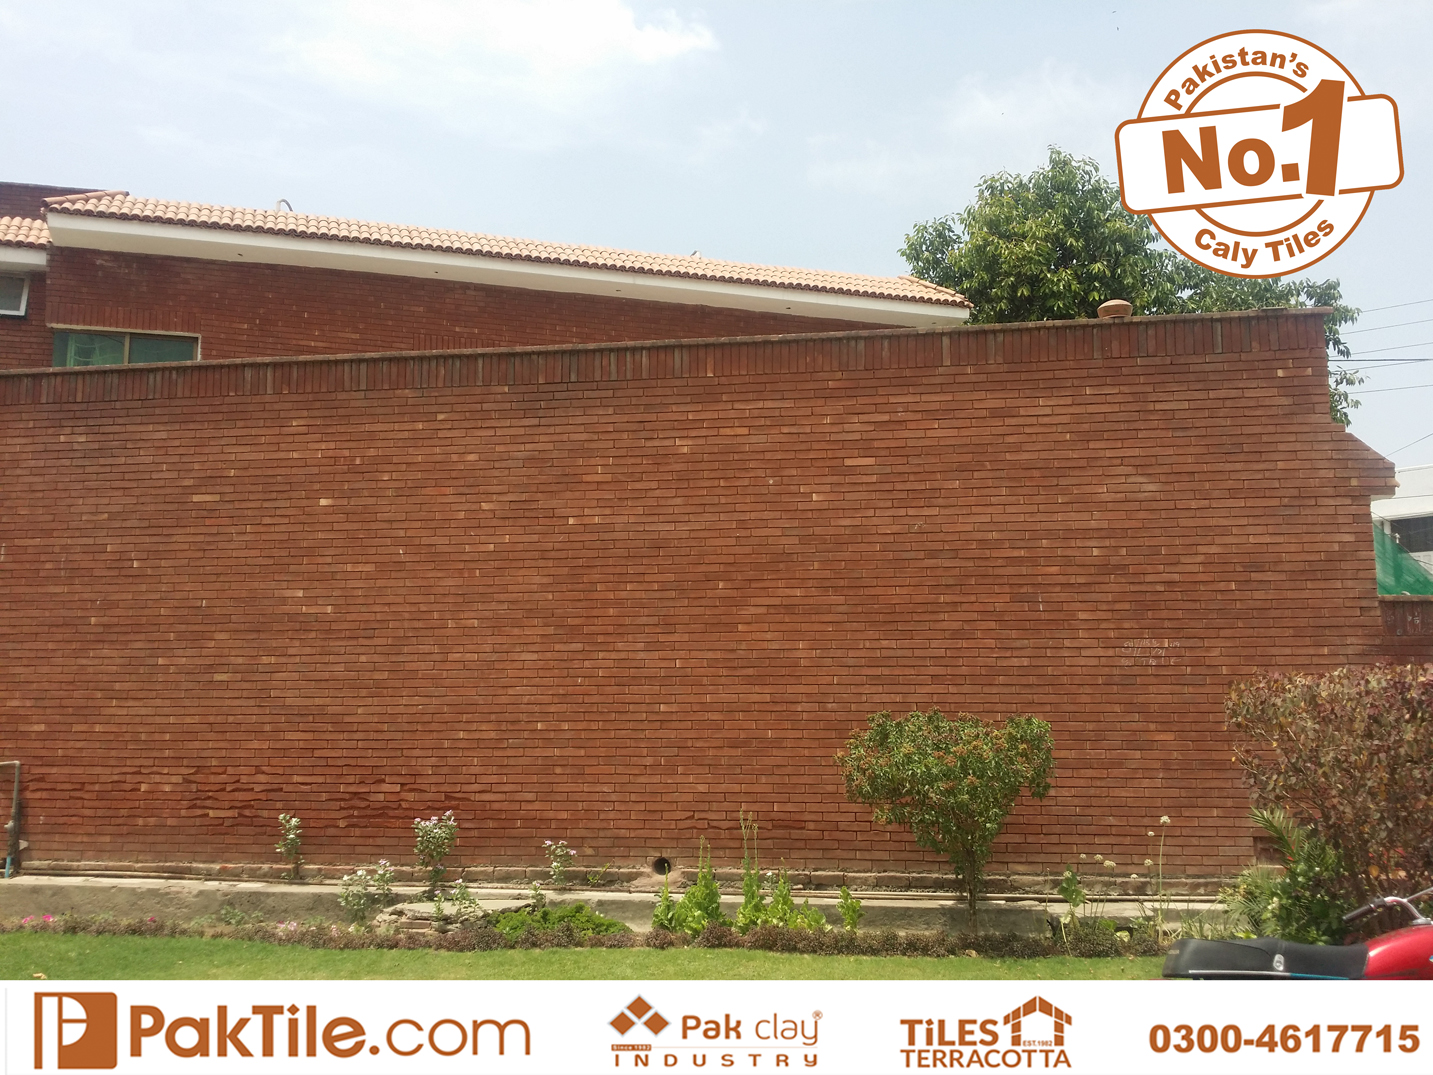 Red Gutka Brick Wall Tiles Textures Rates in Karachi Pakistan Gas Bricks Designs Pictures